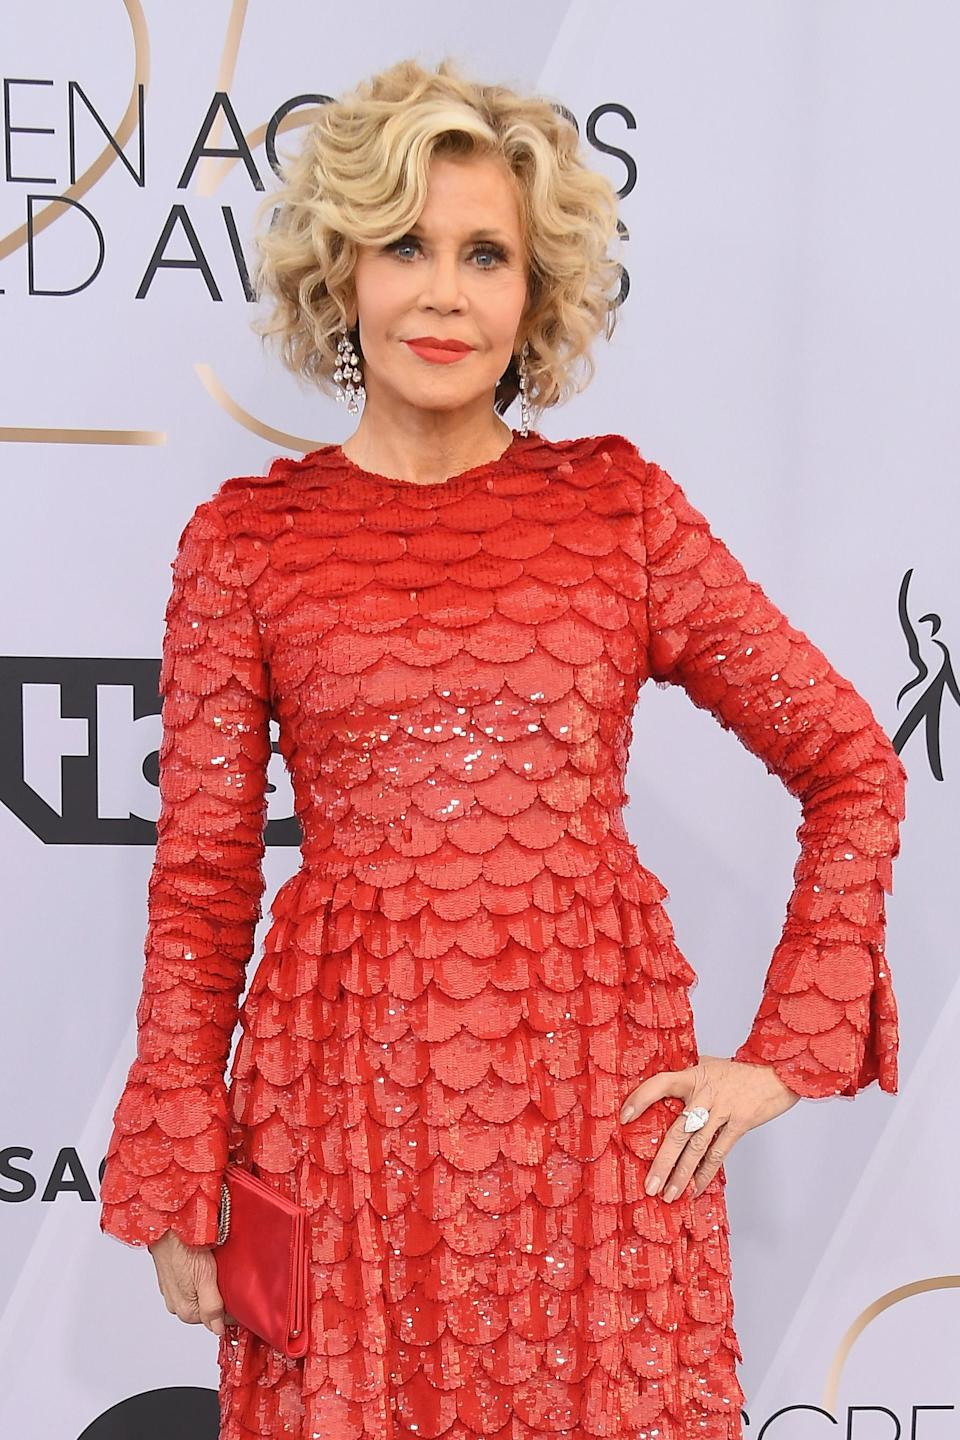 "<p>Actress Jane Fonda, 81, wishes she hadn't gone under the knife but admitted that she basically ""bought a decade"" in a 2015 interview with <a href=""https://www.theguardian.com/film/2015/may/21/jane-fonda-youth-plastic-surgery-sex-cannes"" rel=""nofollow noopener"" target=""_blank"" data-ylk=""slk:The Guardian"" class=""link rapid-noclick-resp""><em>The Guardian</em></a>. <em>[Photo: Getty]</em> </p>"